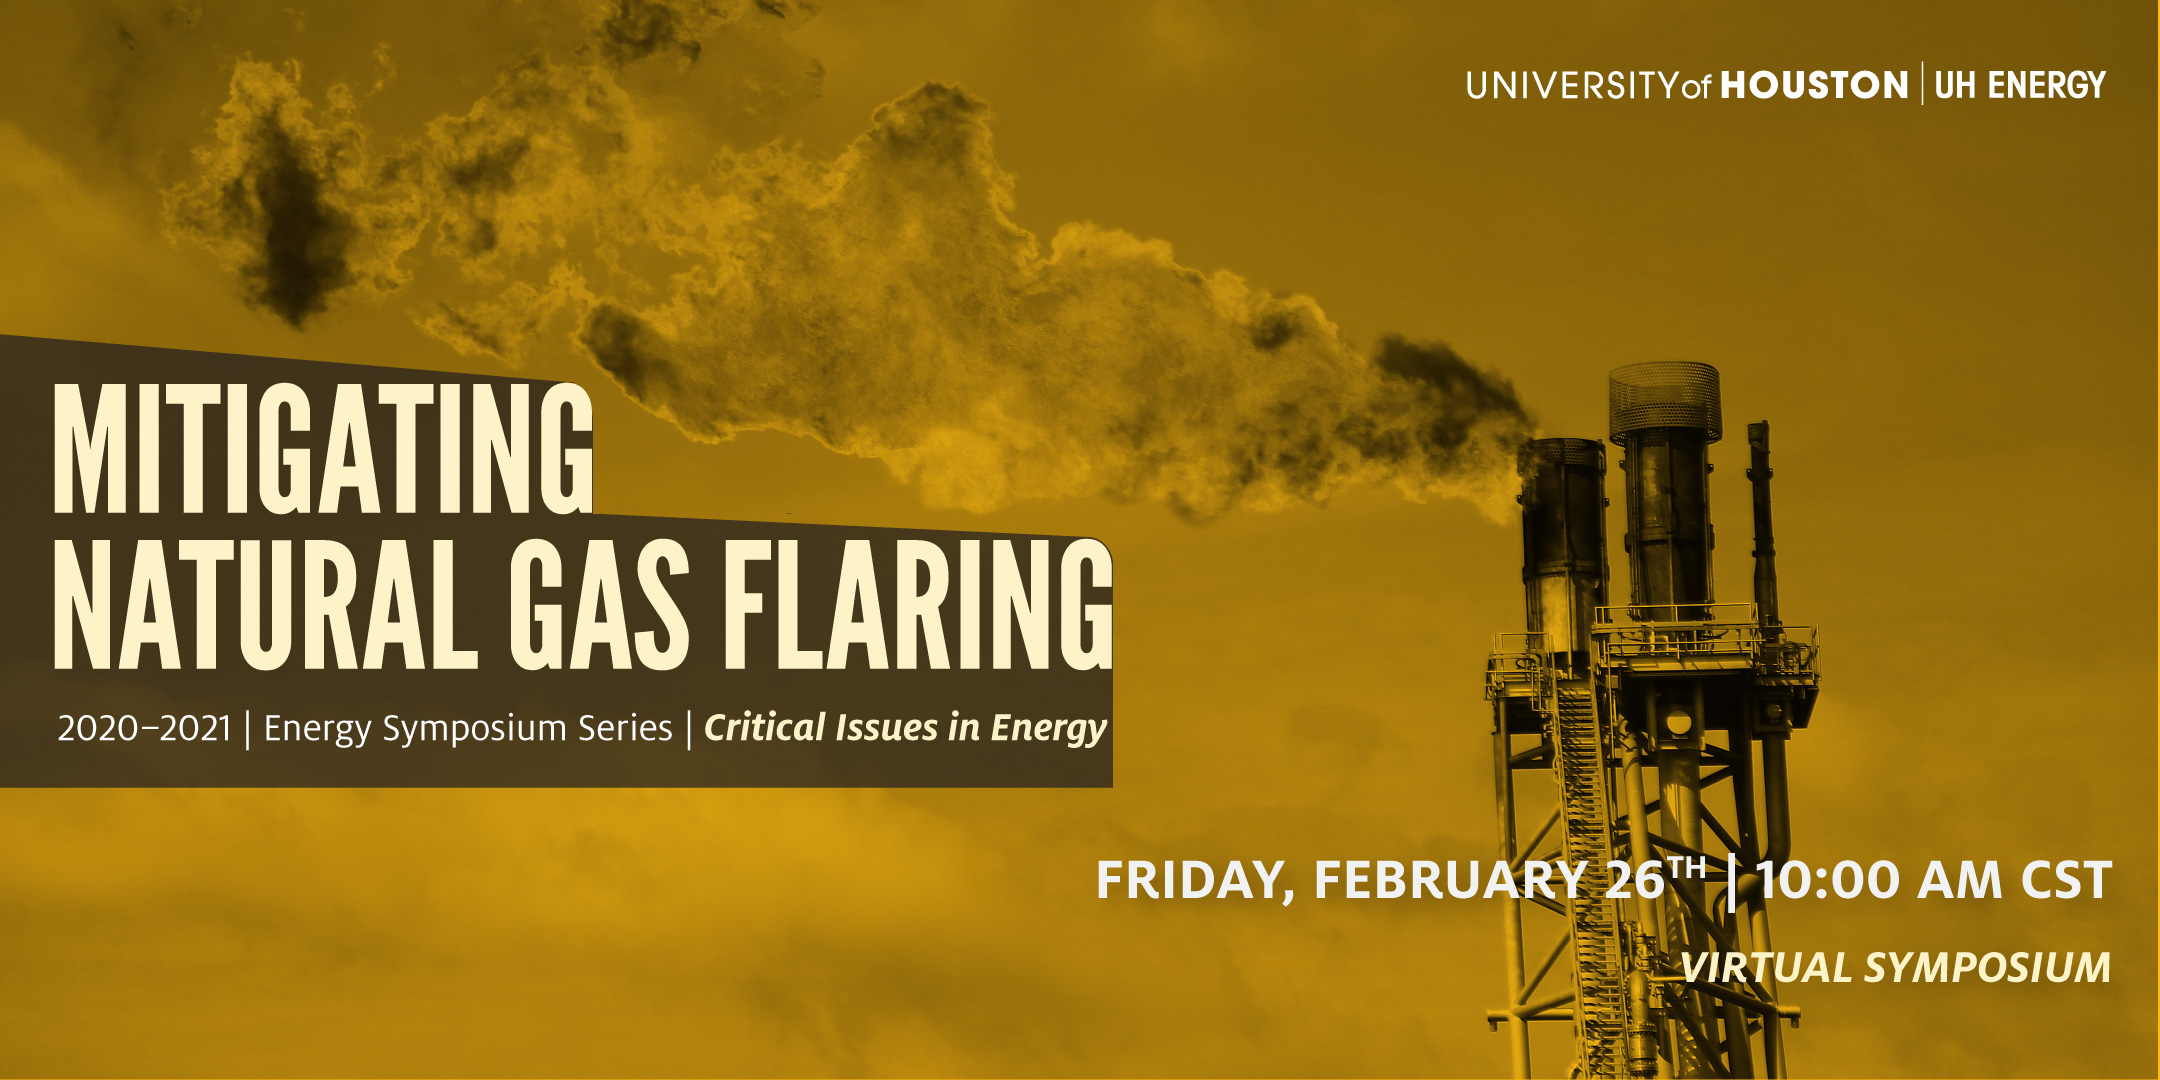 UH Energy Symposium Series: Mitigating Natural Gas Flaring - Click here to visit this page.